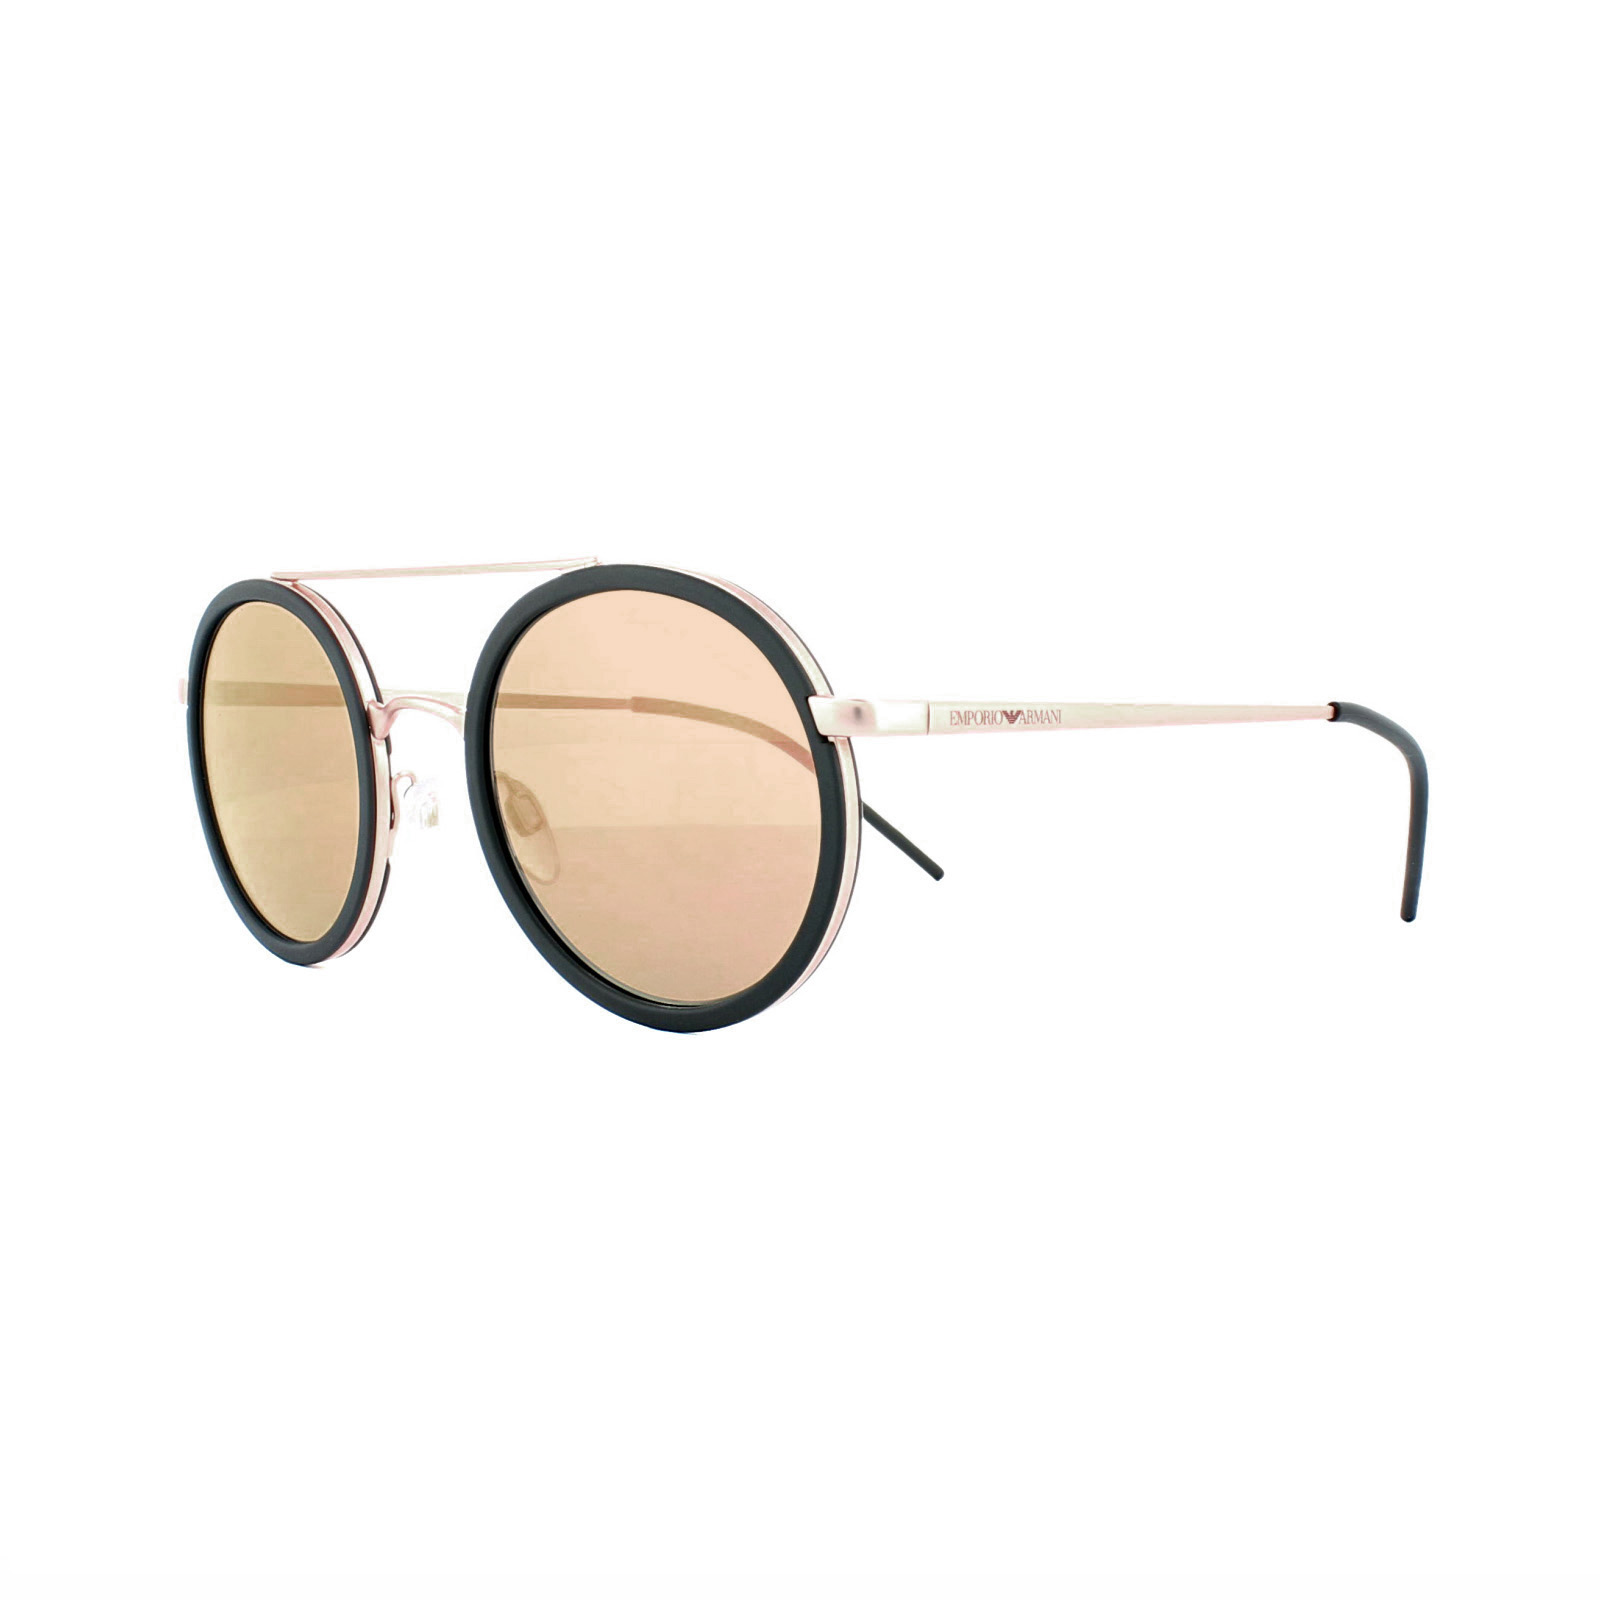 2c008a47cf3 Emporio Armani Sunglasses 2041 3004 4Z Matt Pink Gold Grey Mirror ...